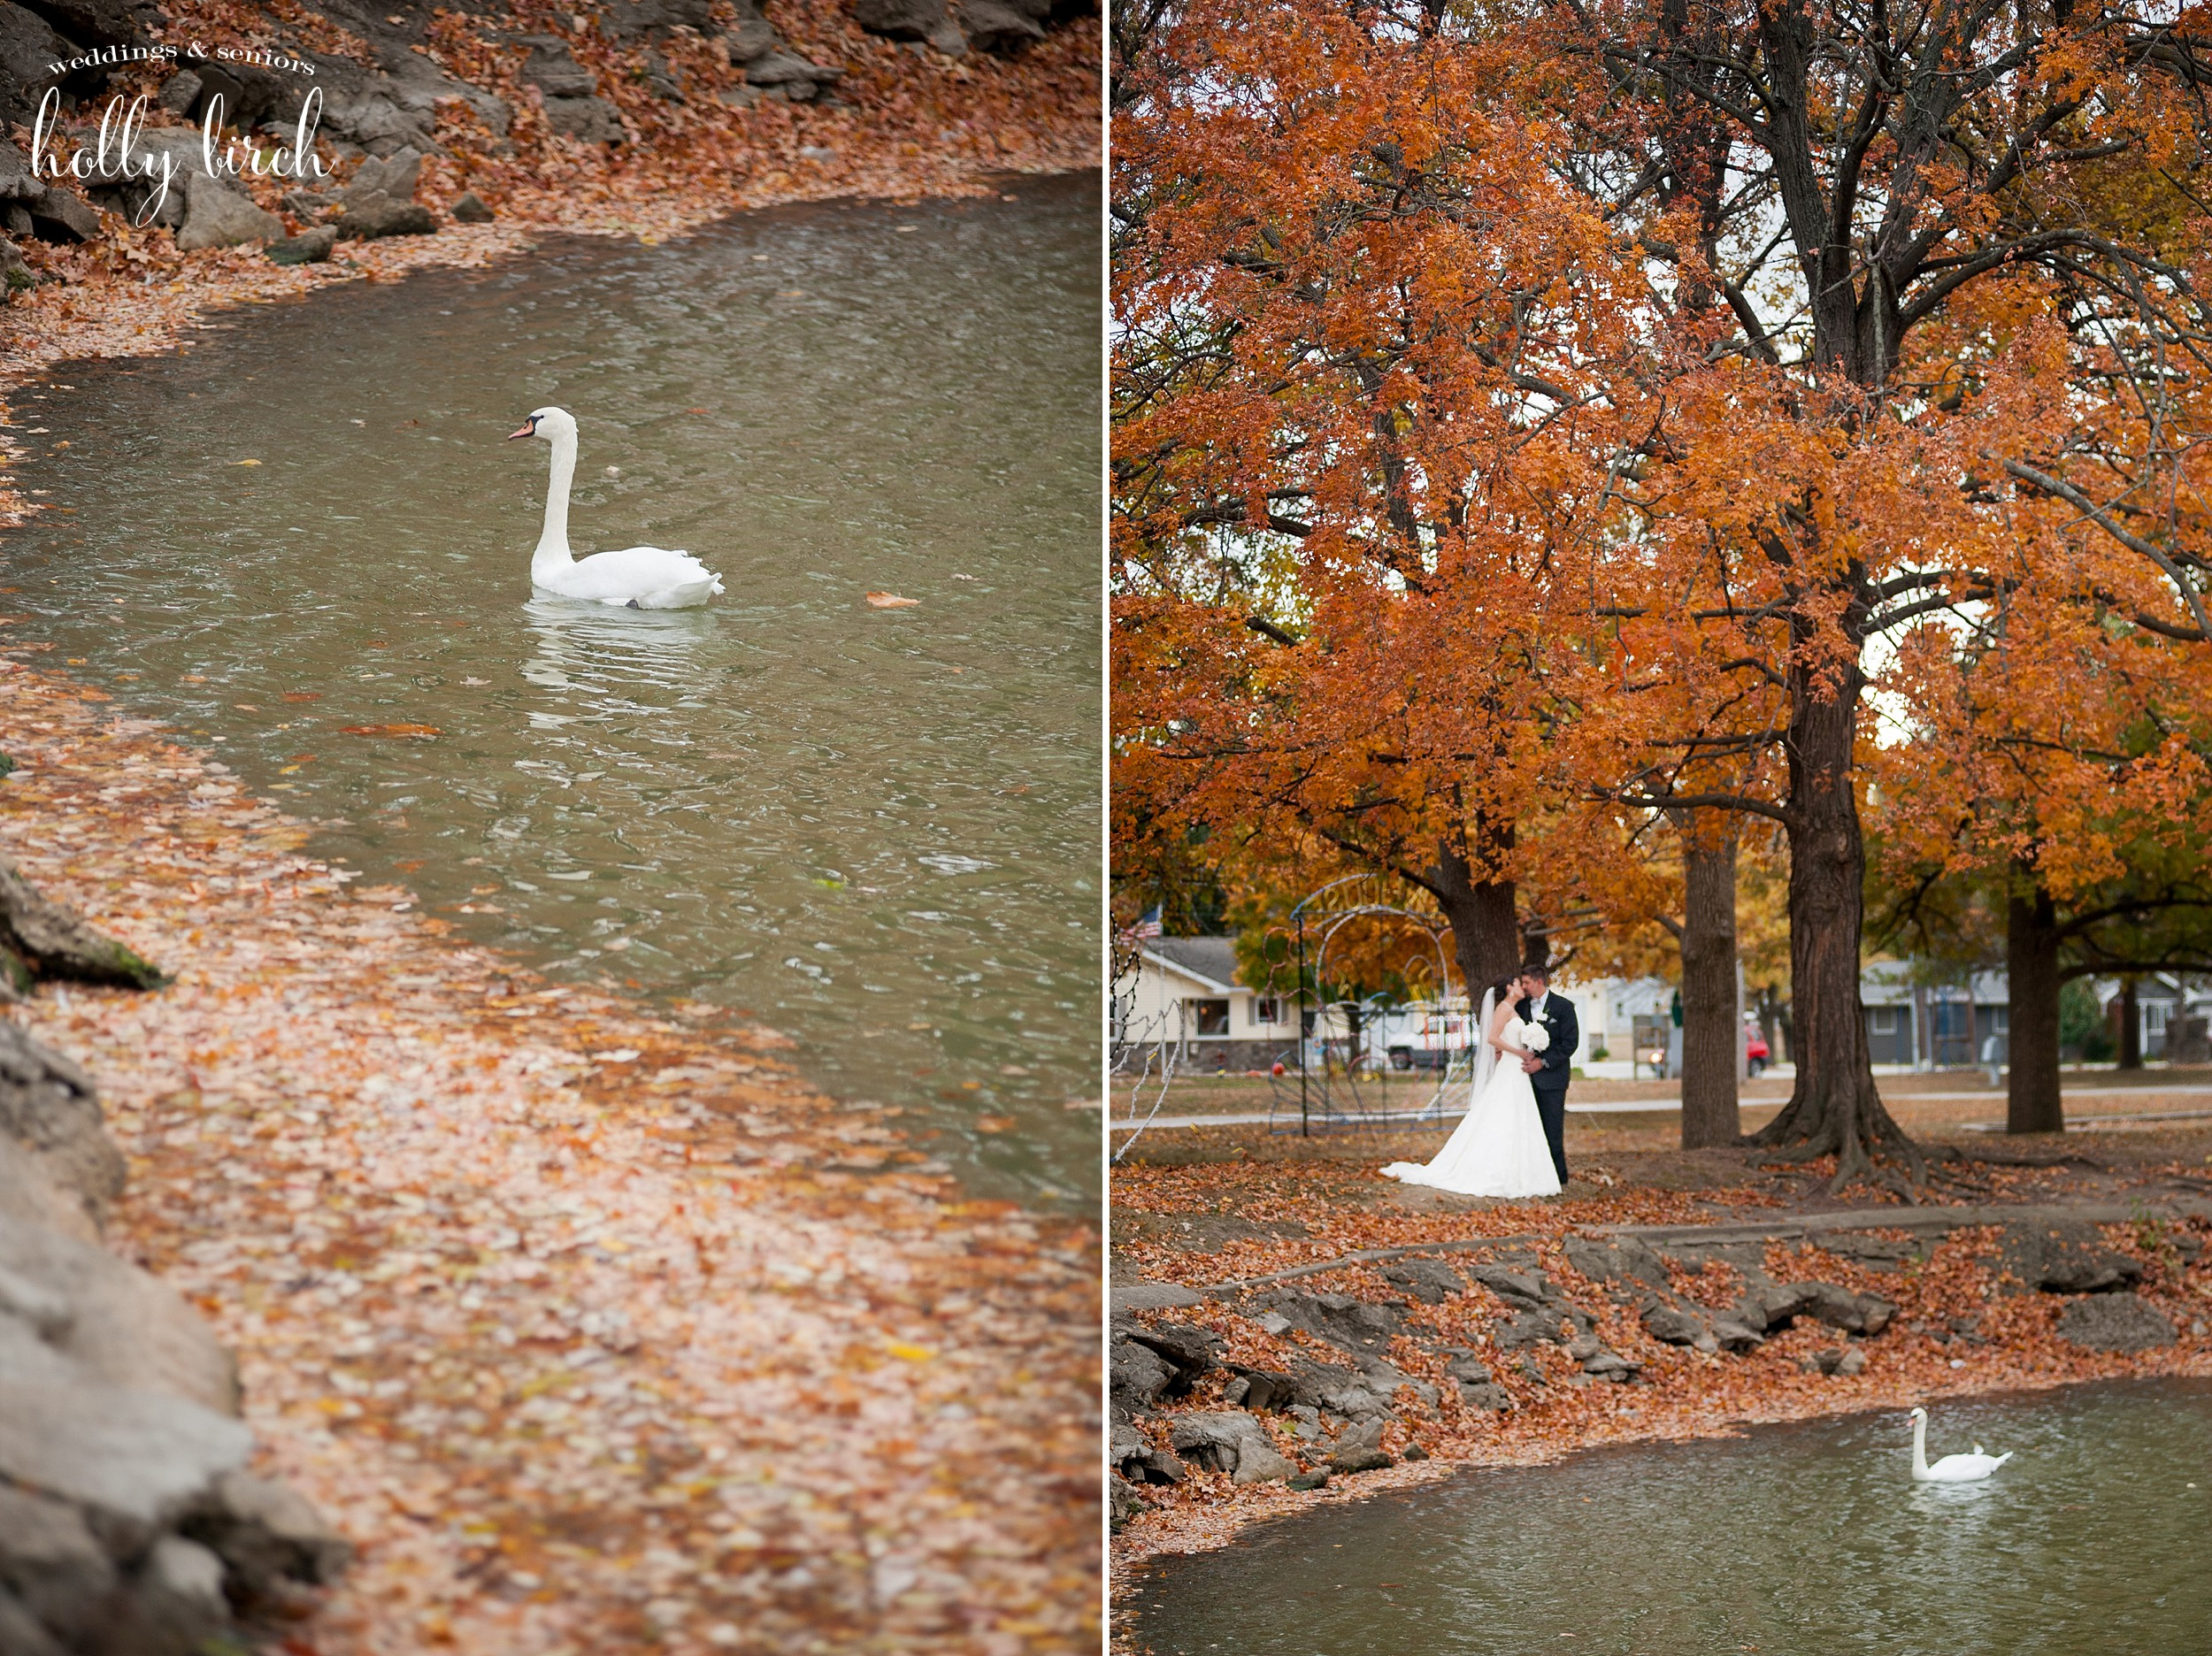 wedding swan picture